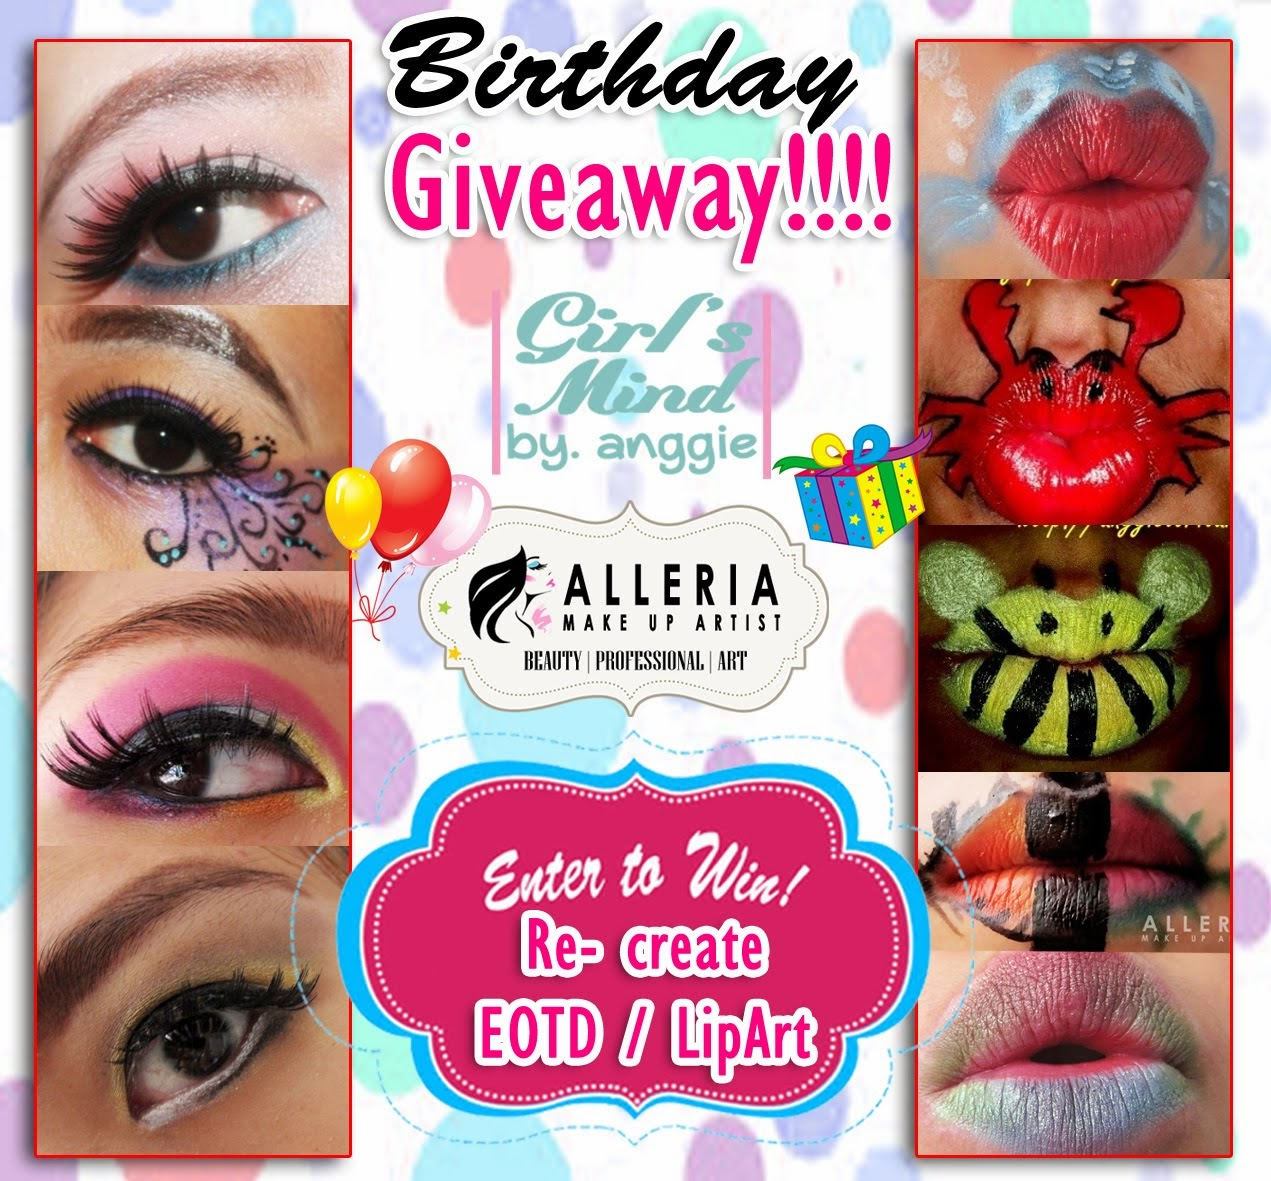 My 1st Birthday Giveaway